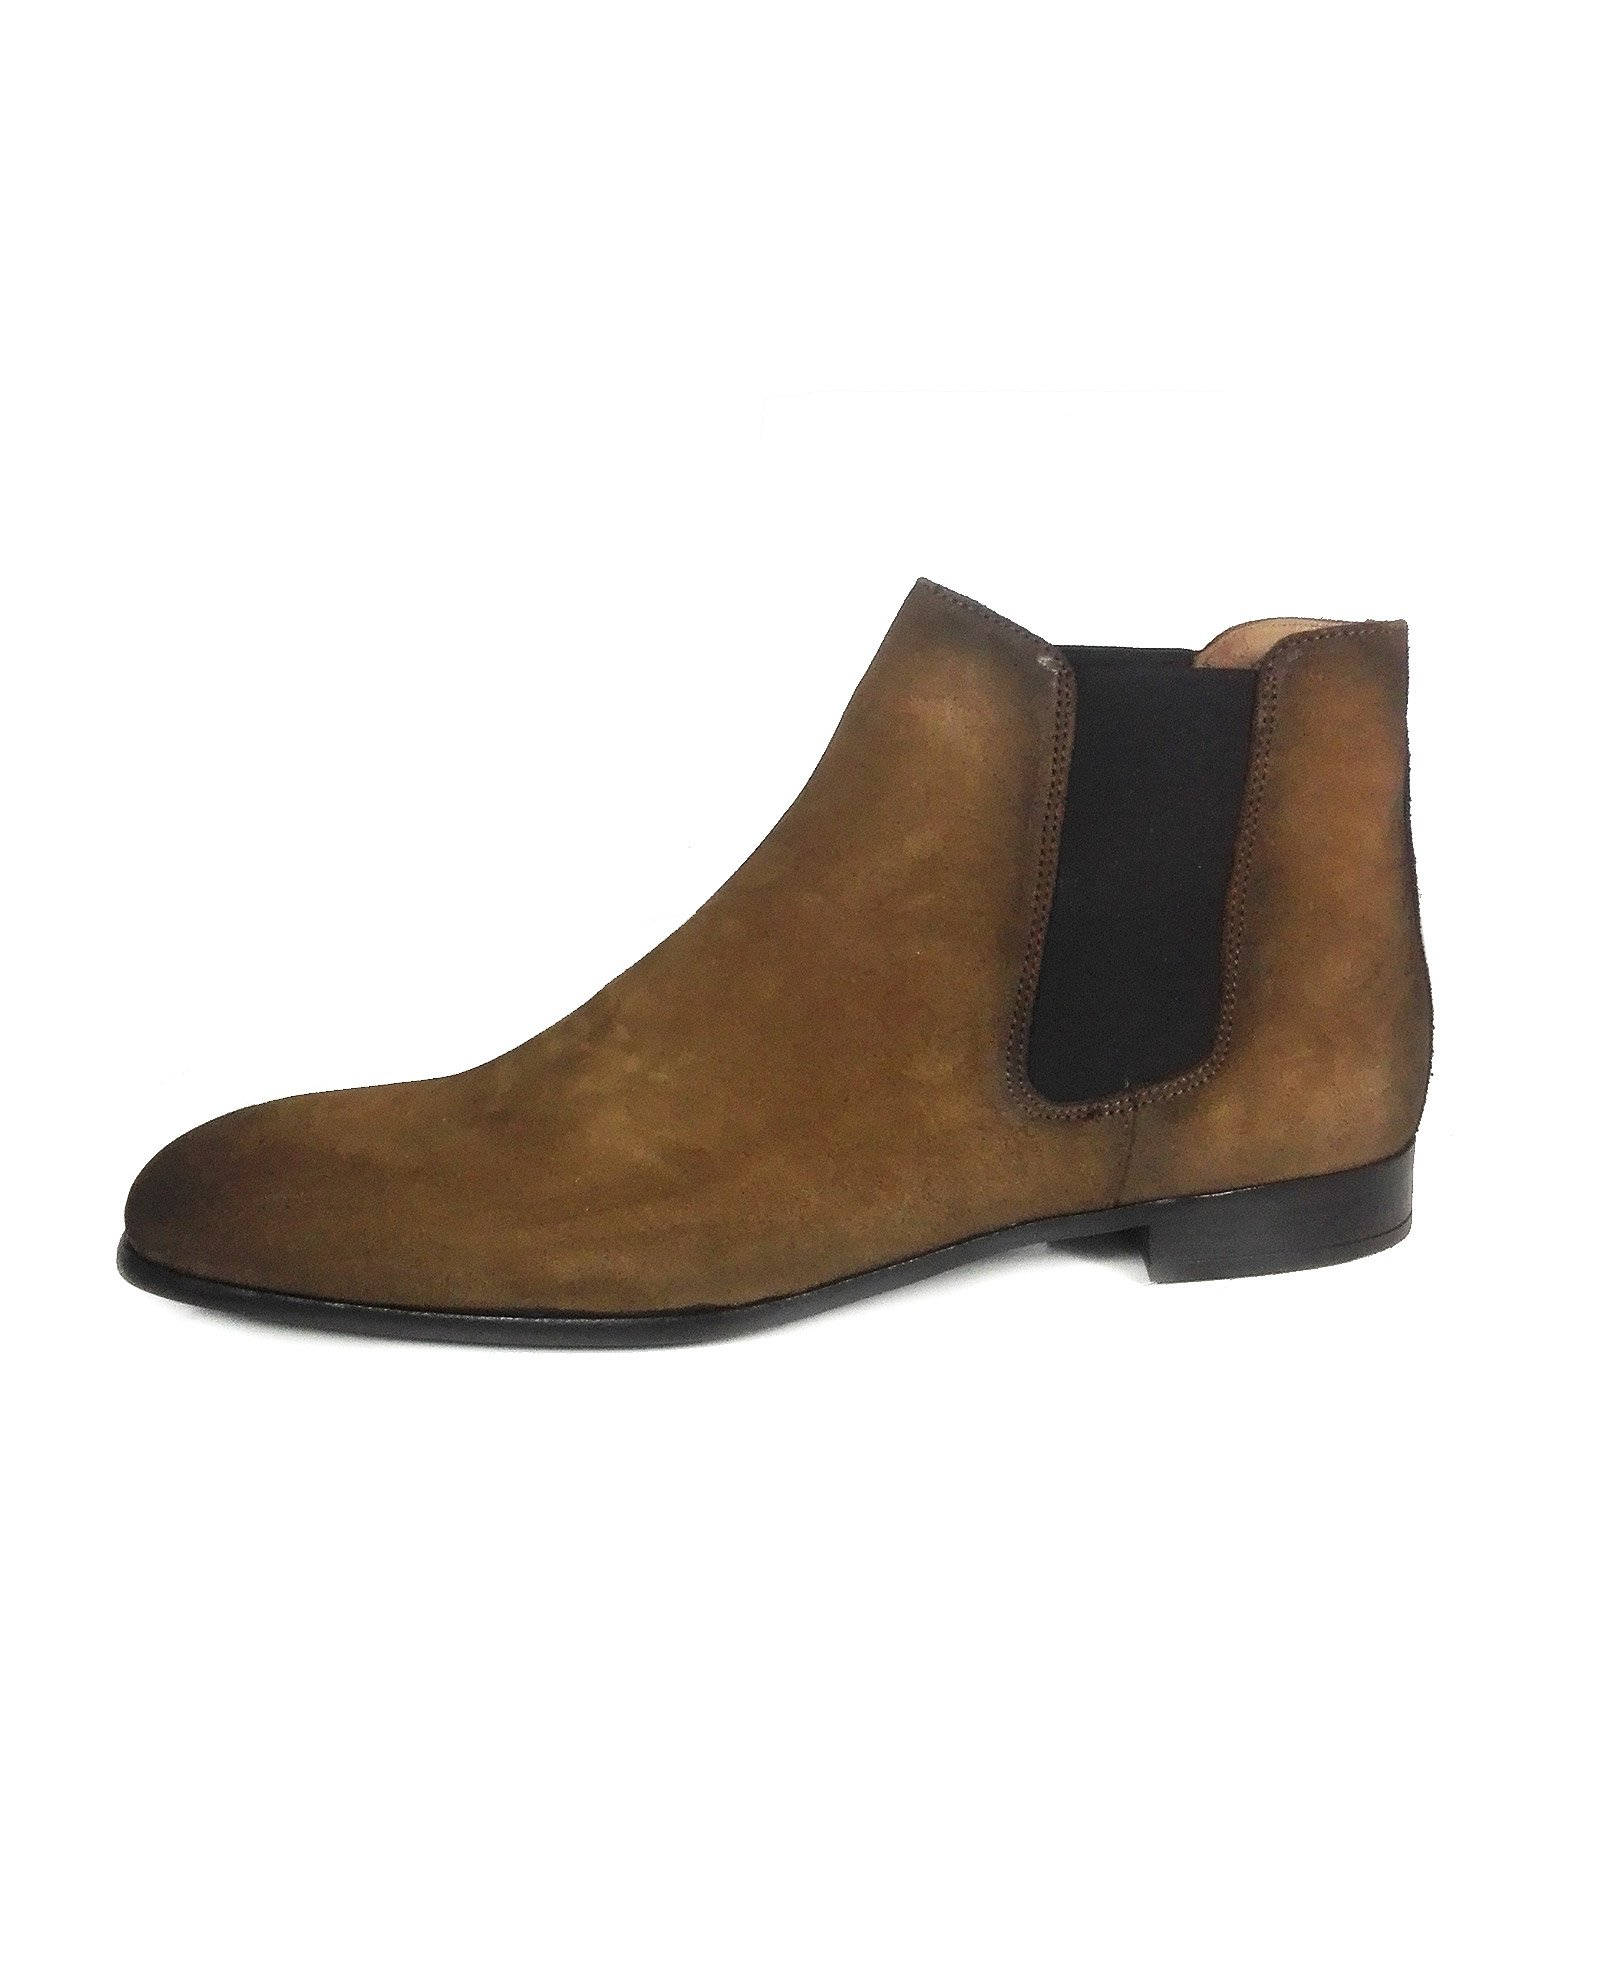 Zara Men Brown split suede ankle boots 2003/302 (43 EU | 10 US | 9 UK) by Zara (Image #1)